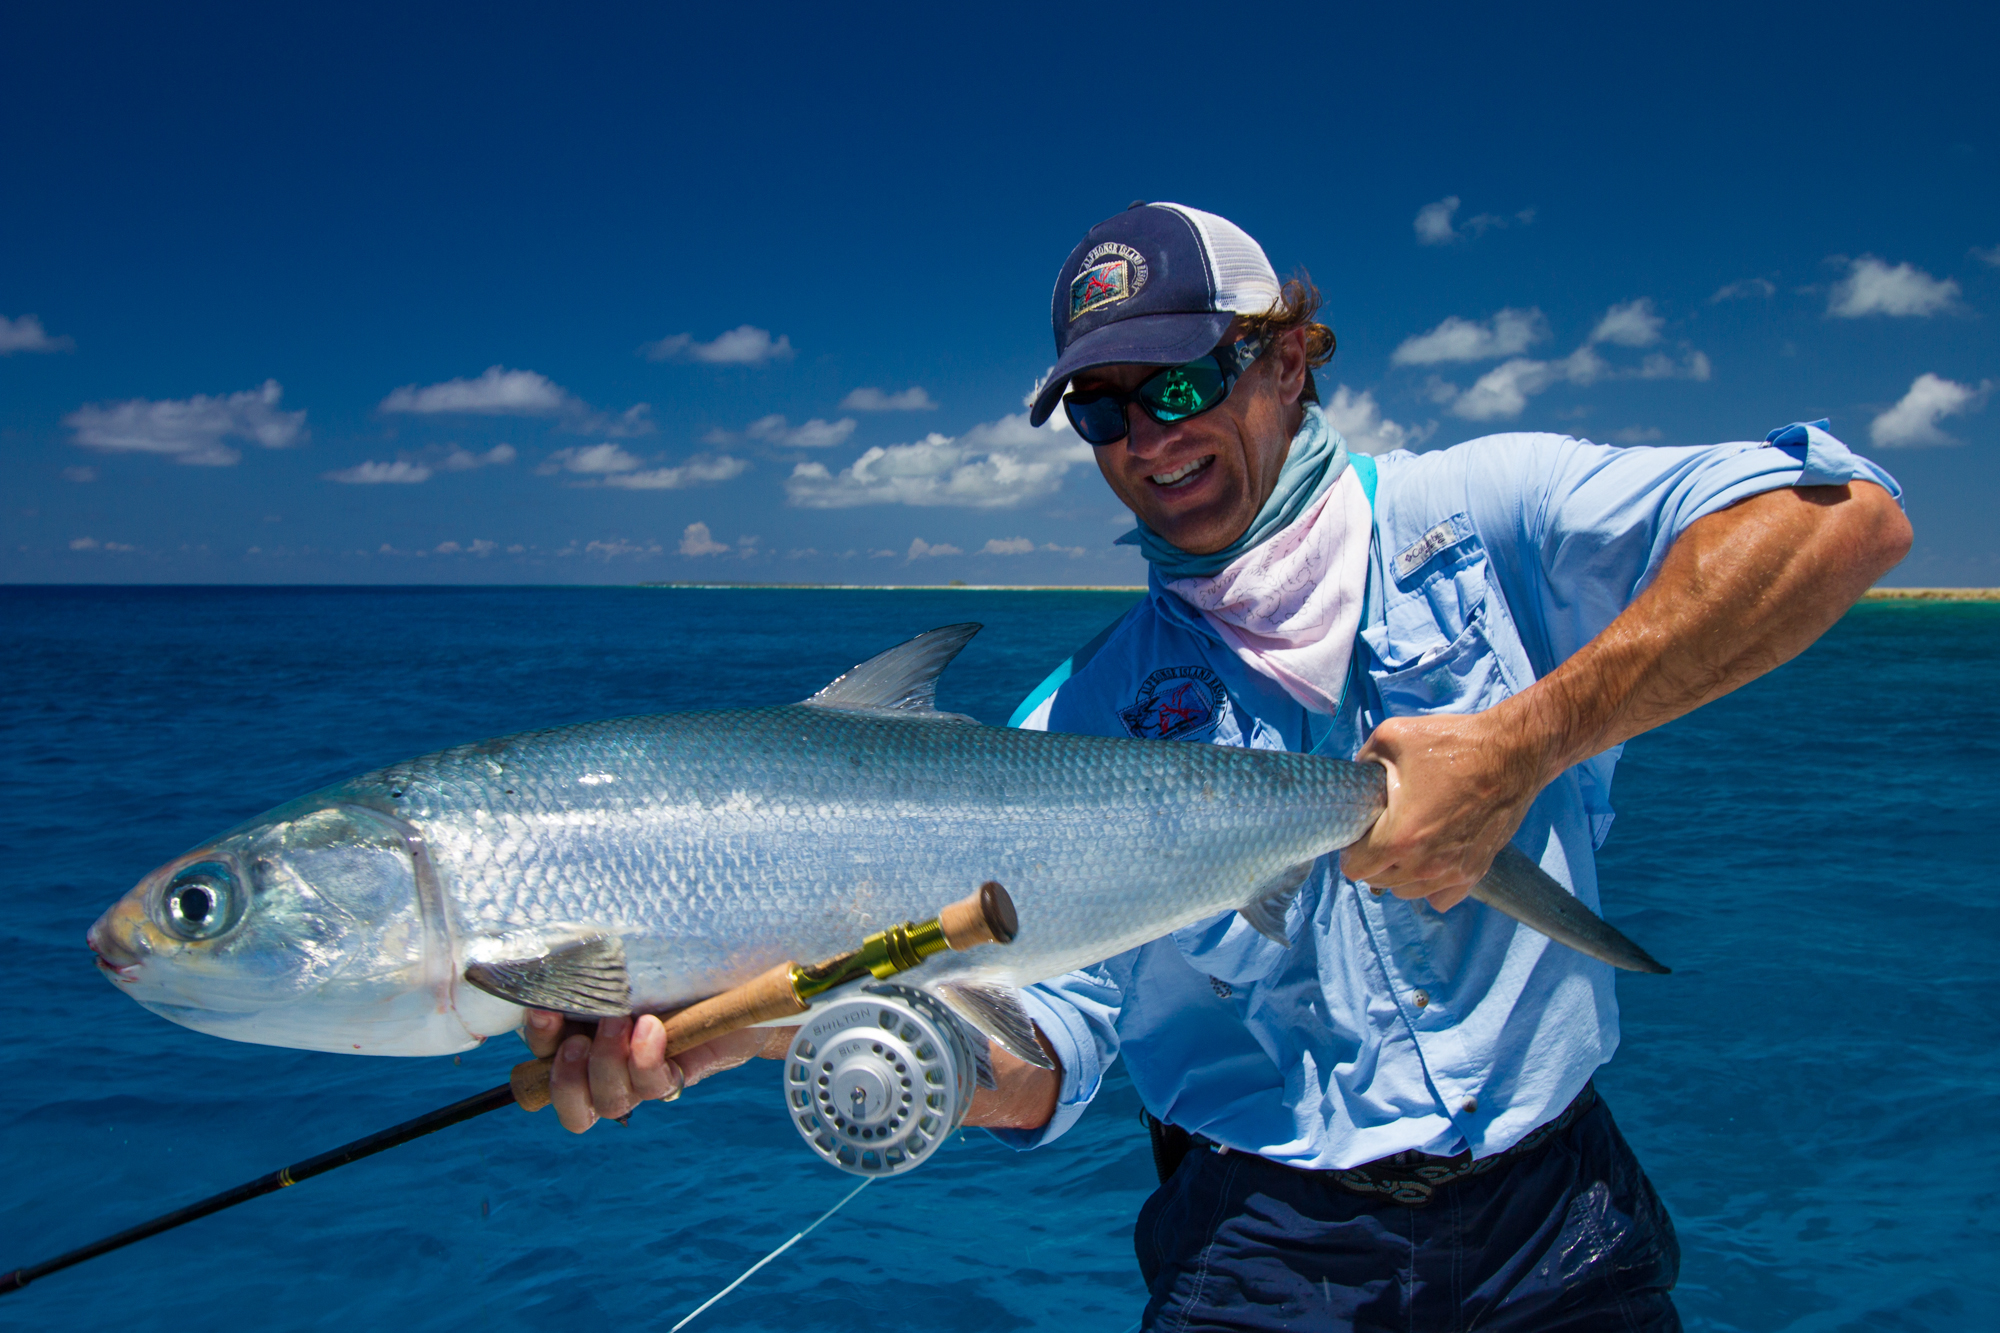 alphonse-experience-fly-fishing-species-milkfish-03